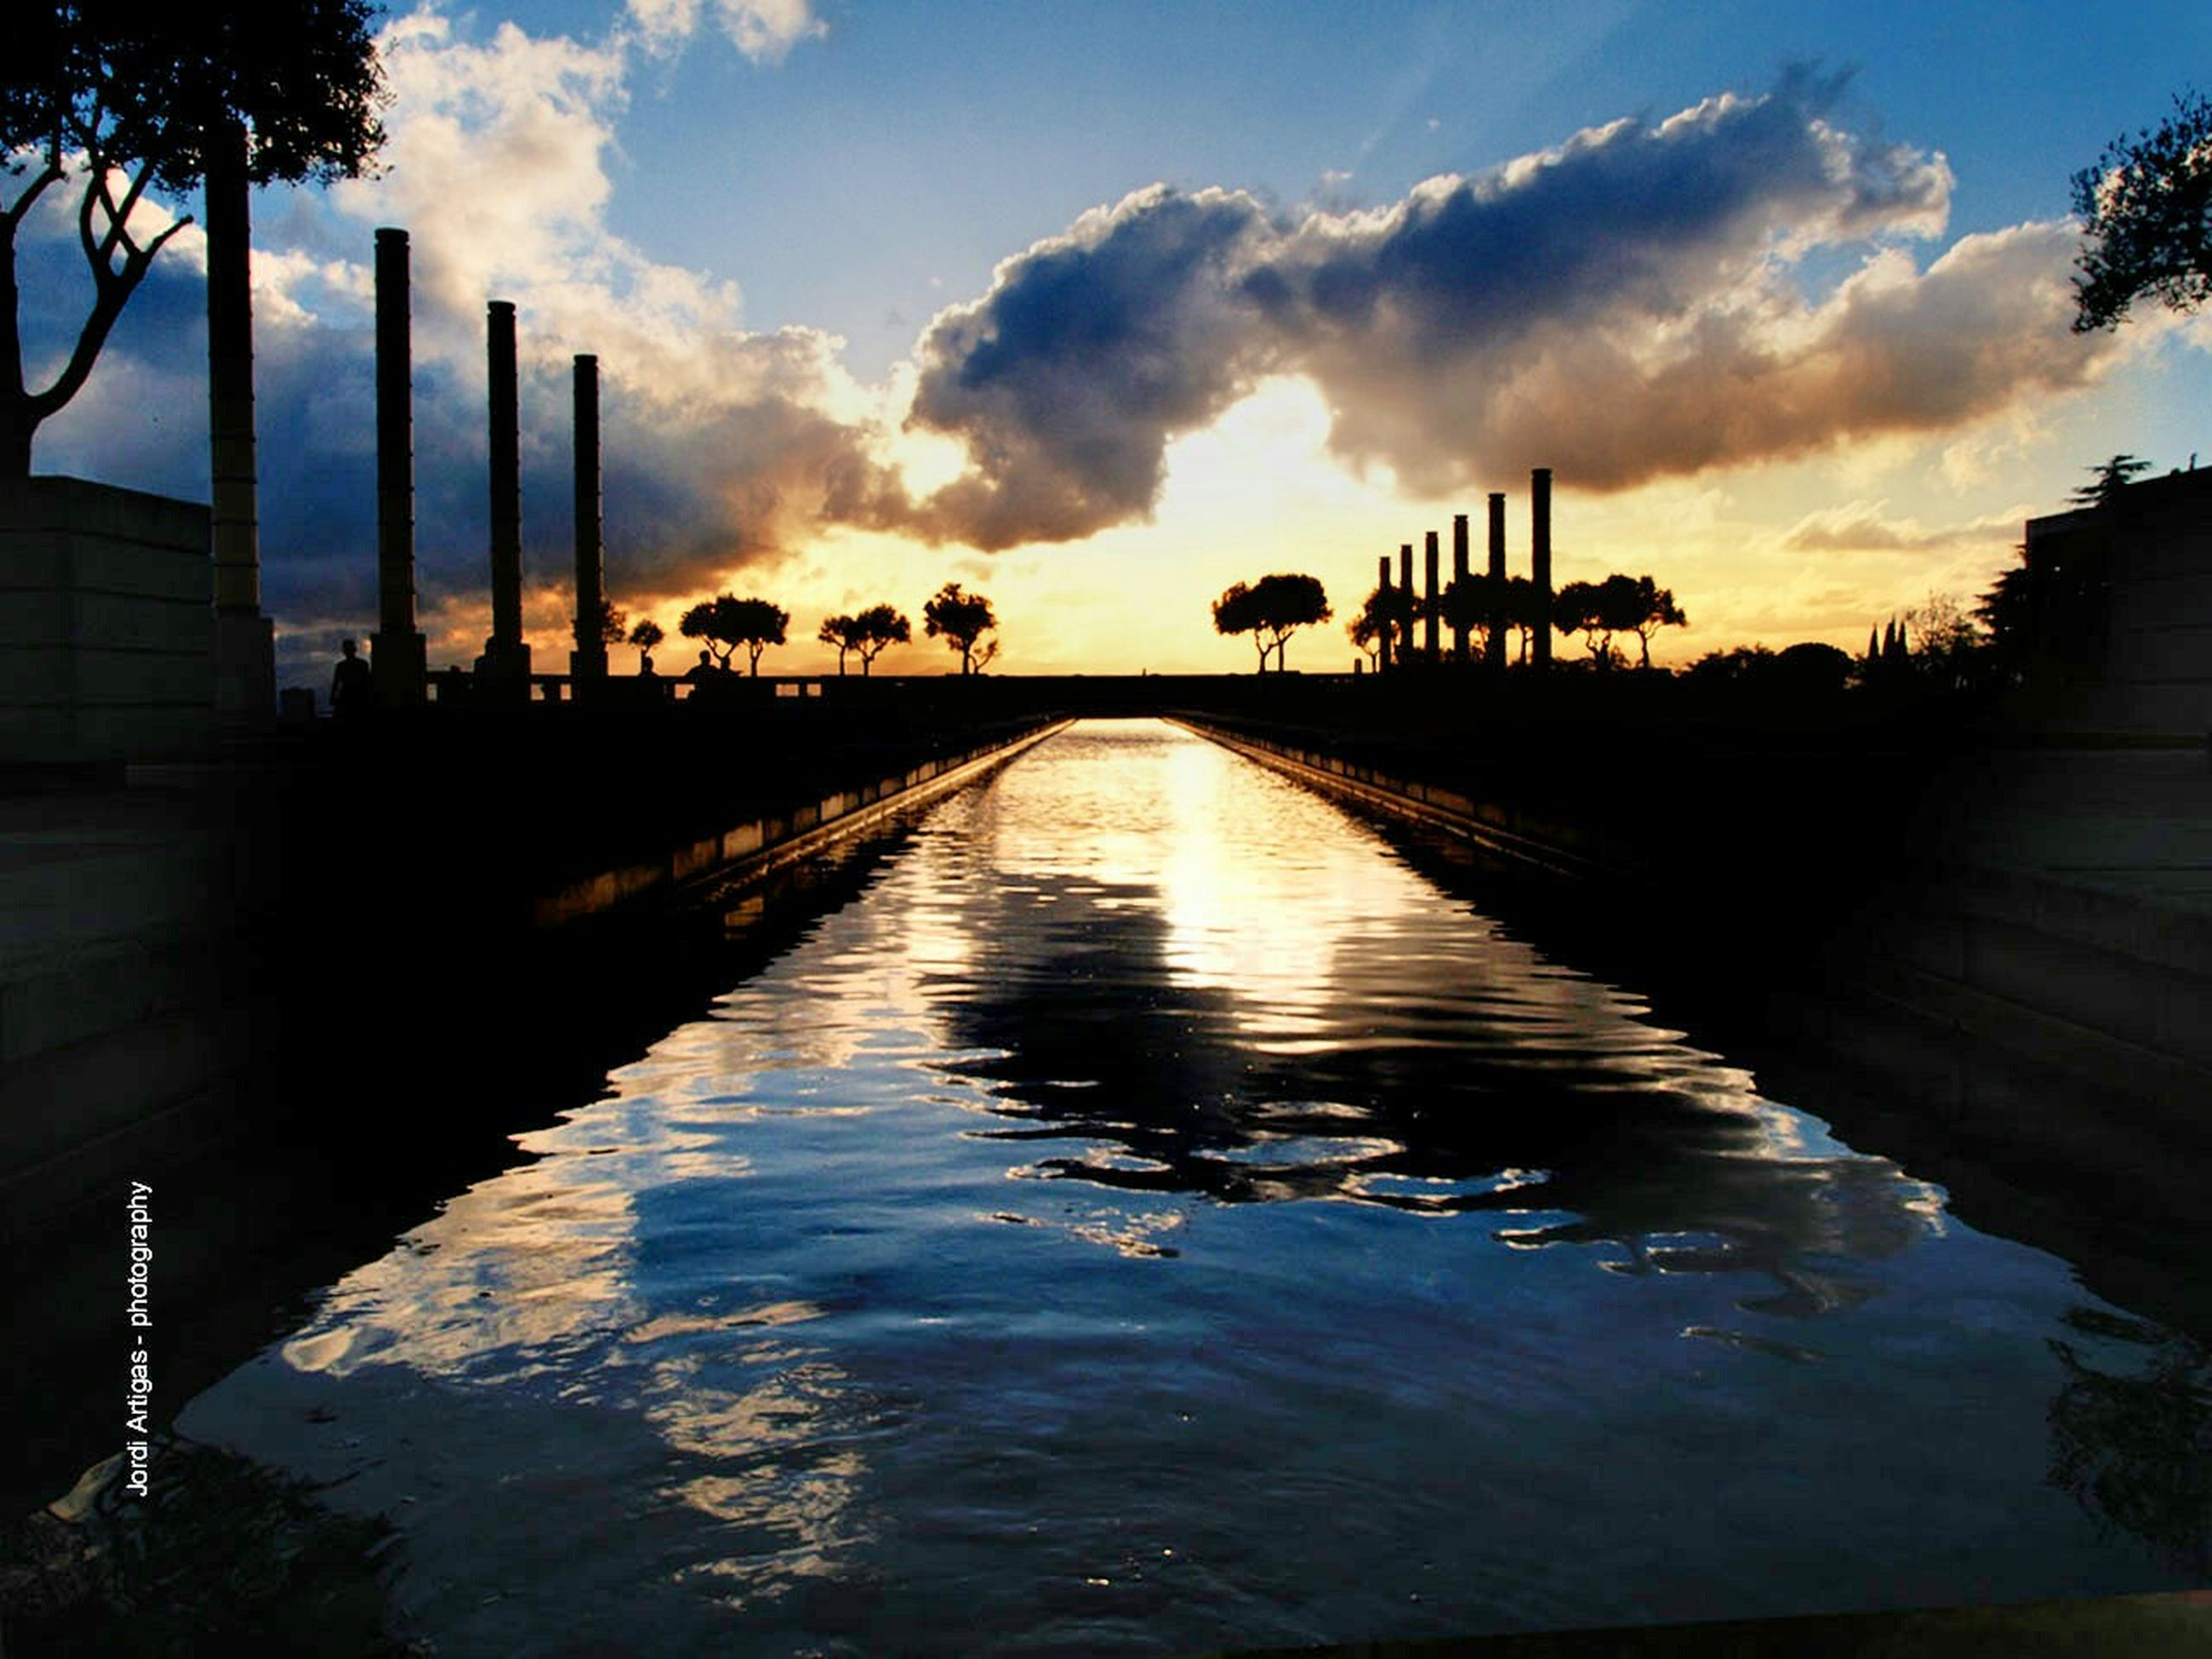 sunset, water, sky, built structure, architecture, cloud - sky, the way forward, diminishing perspective, connection, silhouette, reflection, river, waterfront, cloud, bridge - man made structure, building exterior, transportation, cloudy, vanishing point, nature